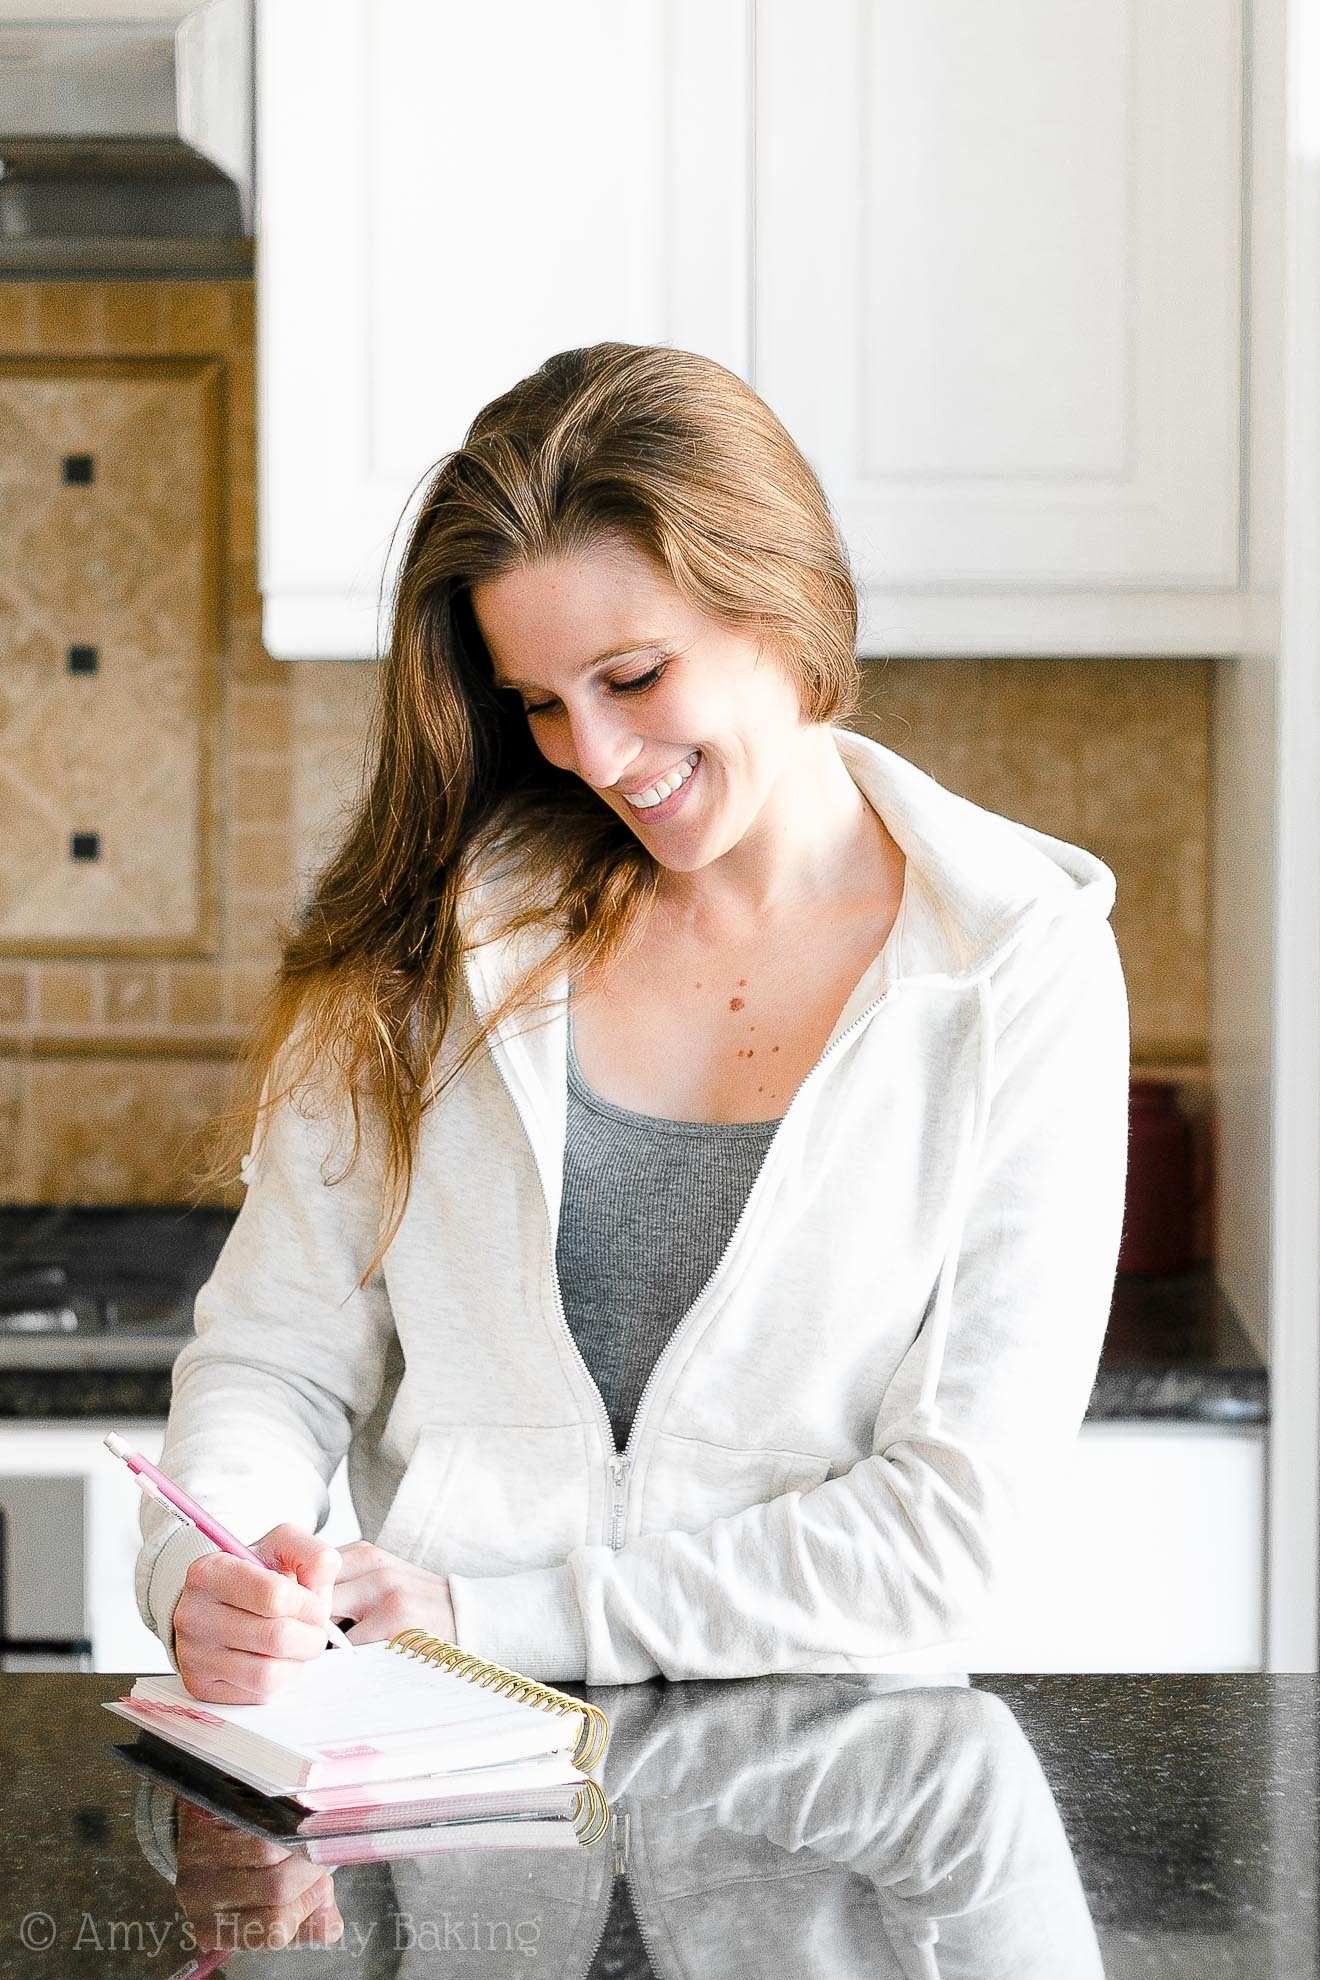 Amy Atherton – recipe developer, photographer & founder of Amy's Healthy Baking (amyshealthybaking.com)